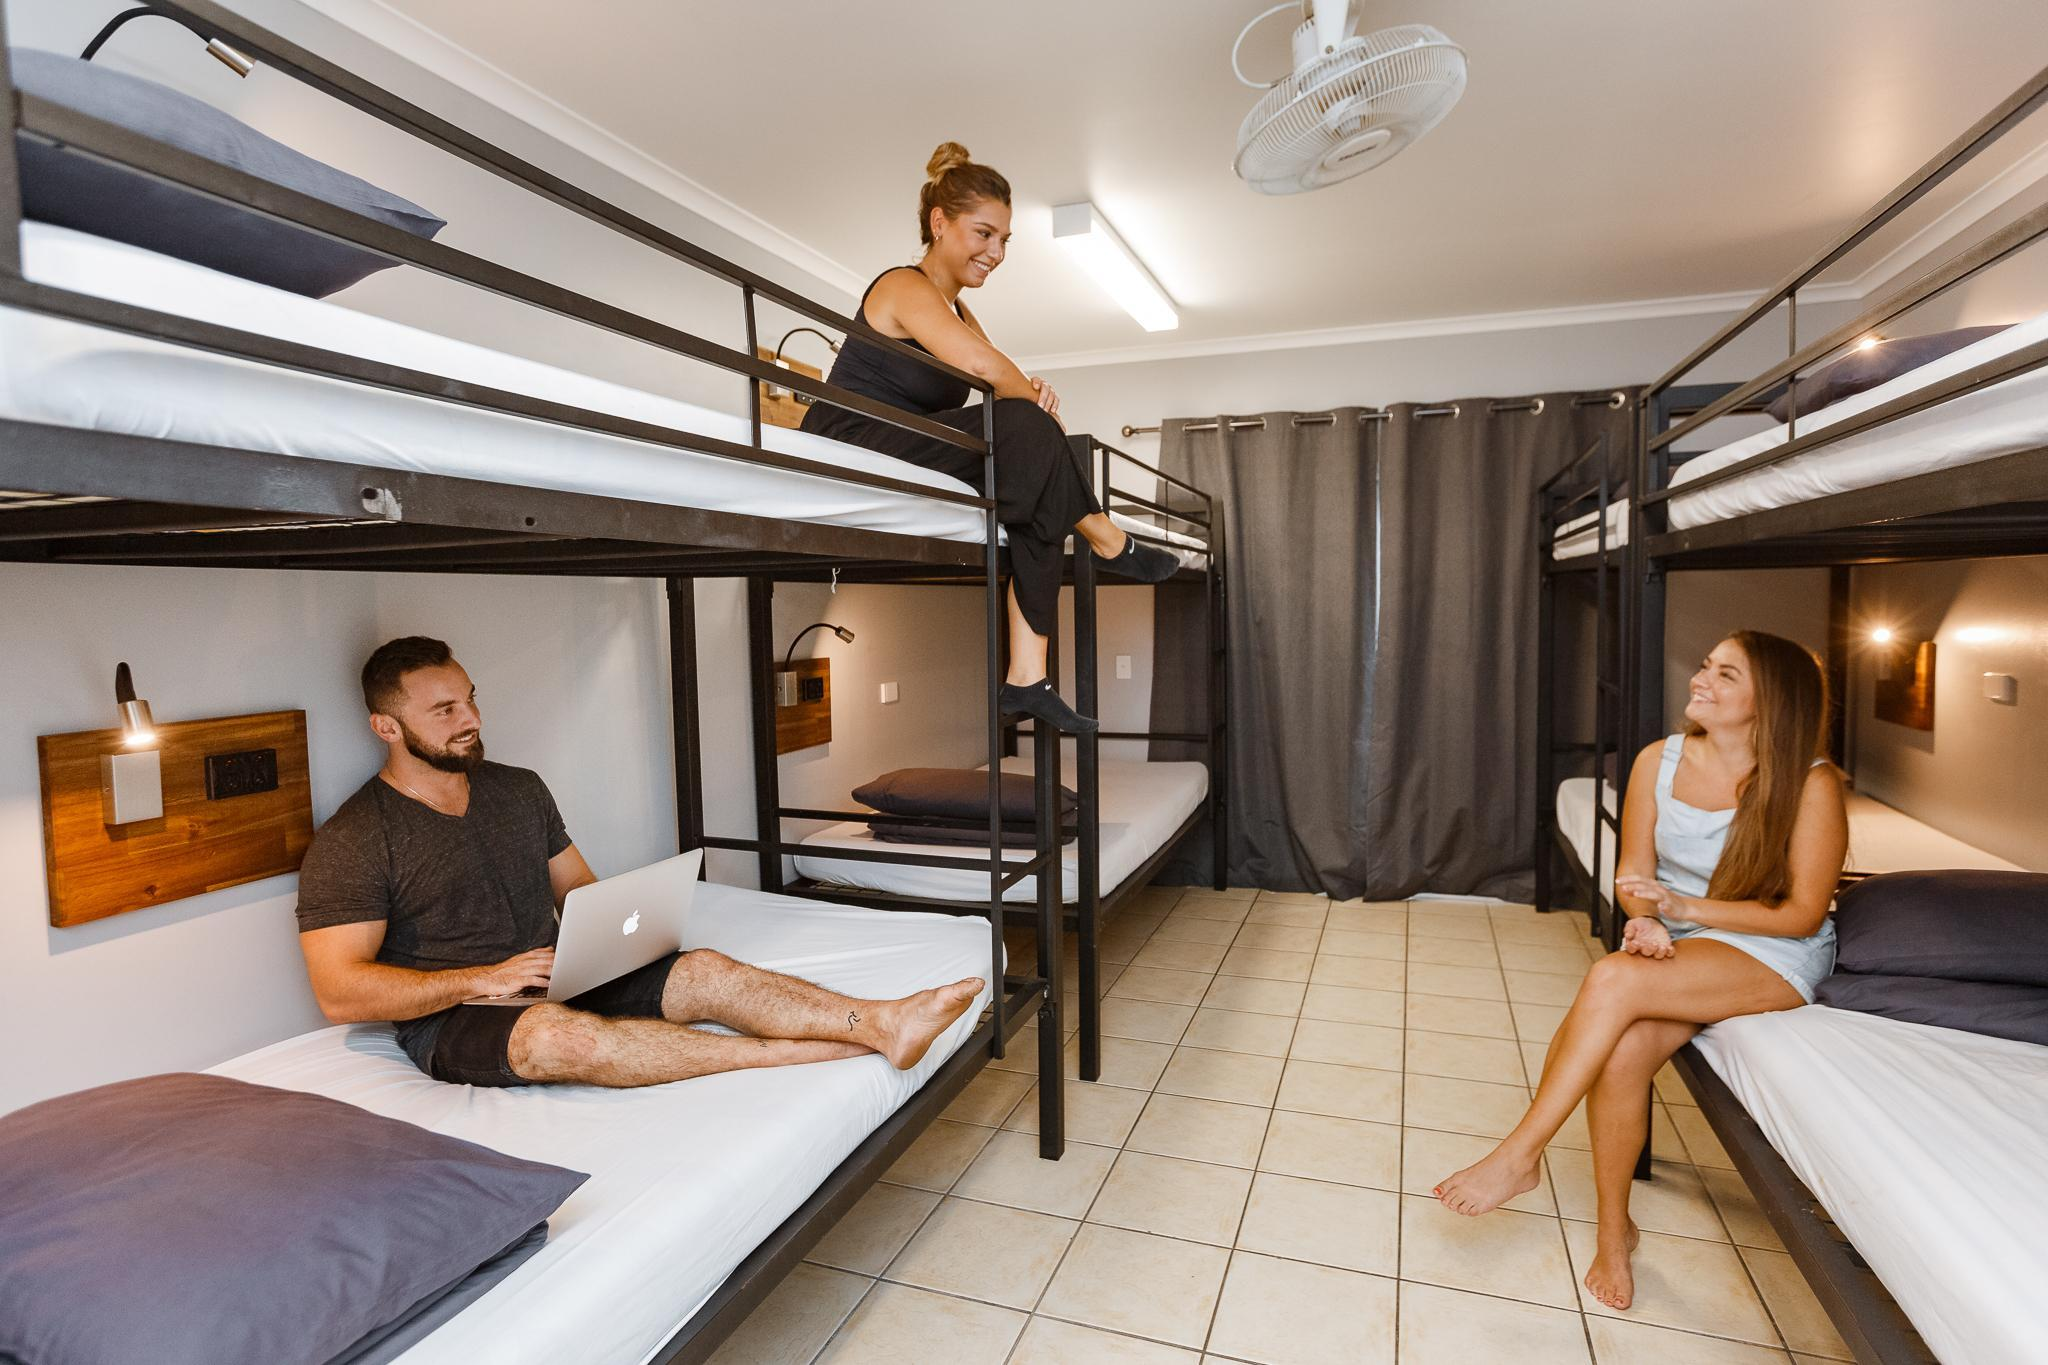 6-Bed Dormitory - Mixed